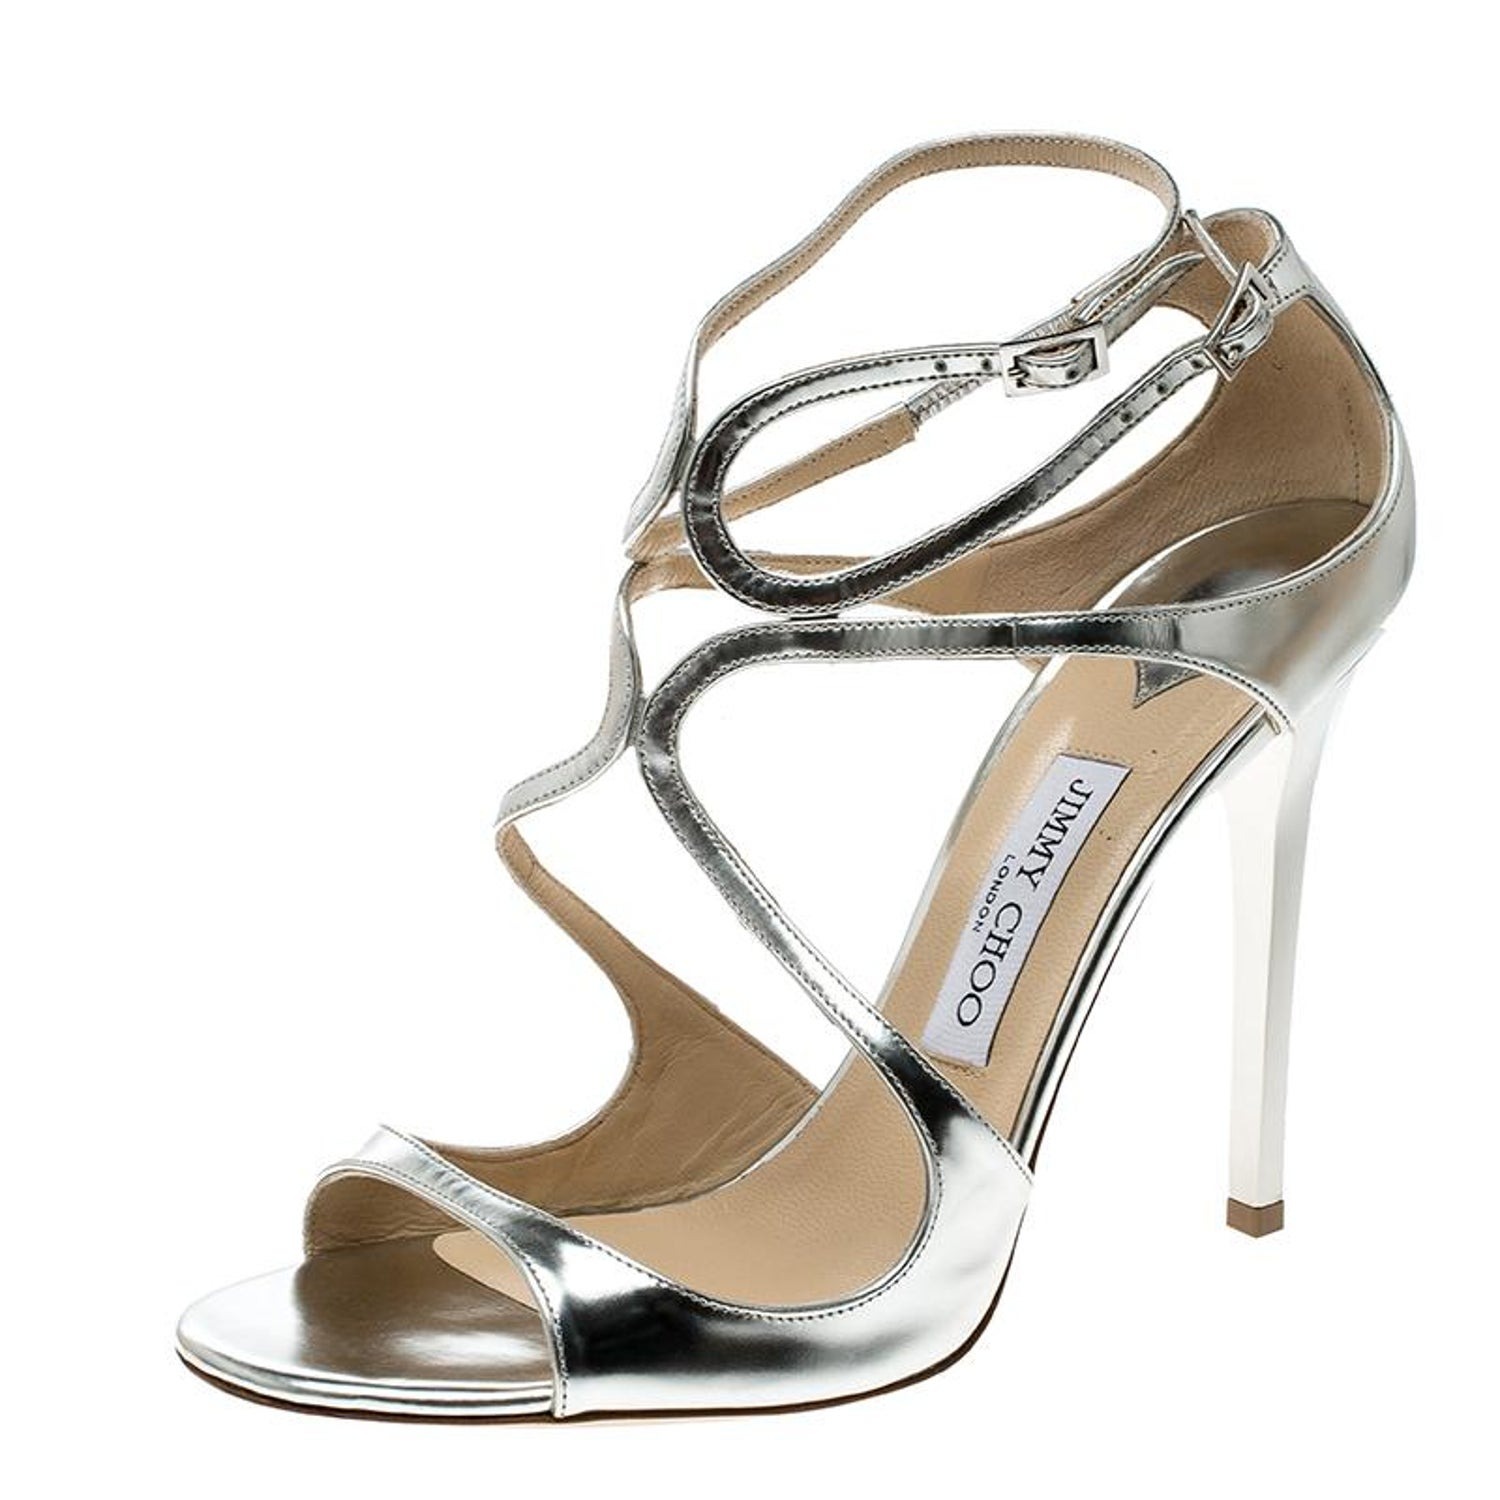 a0233d7045d Jimmy Choo Metallic Silver Mirror Leather Lance Strappy Sandals Size 41 at  1stdibs